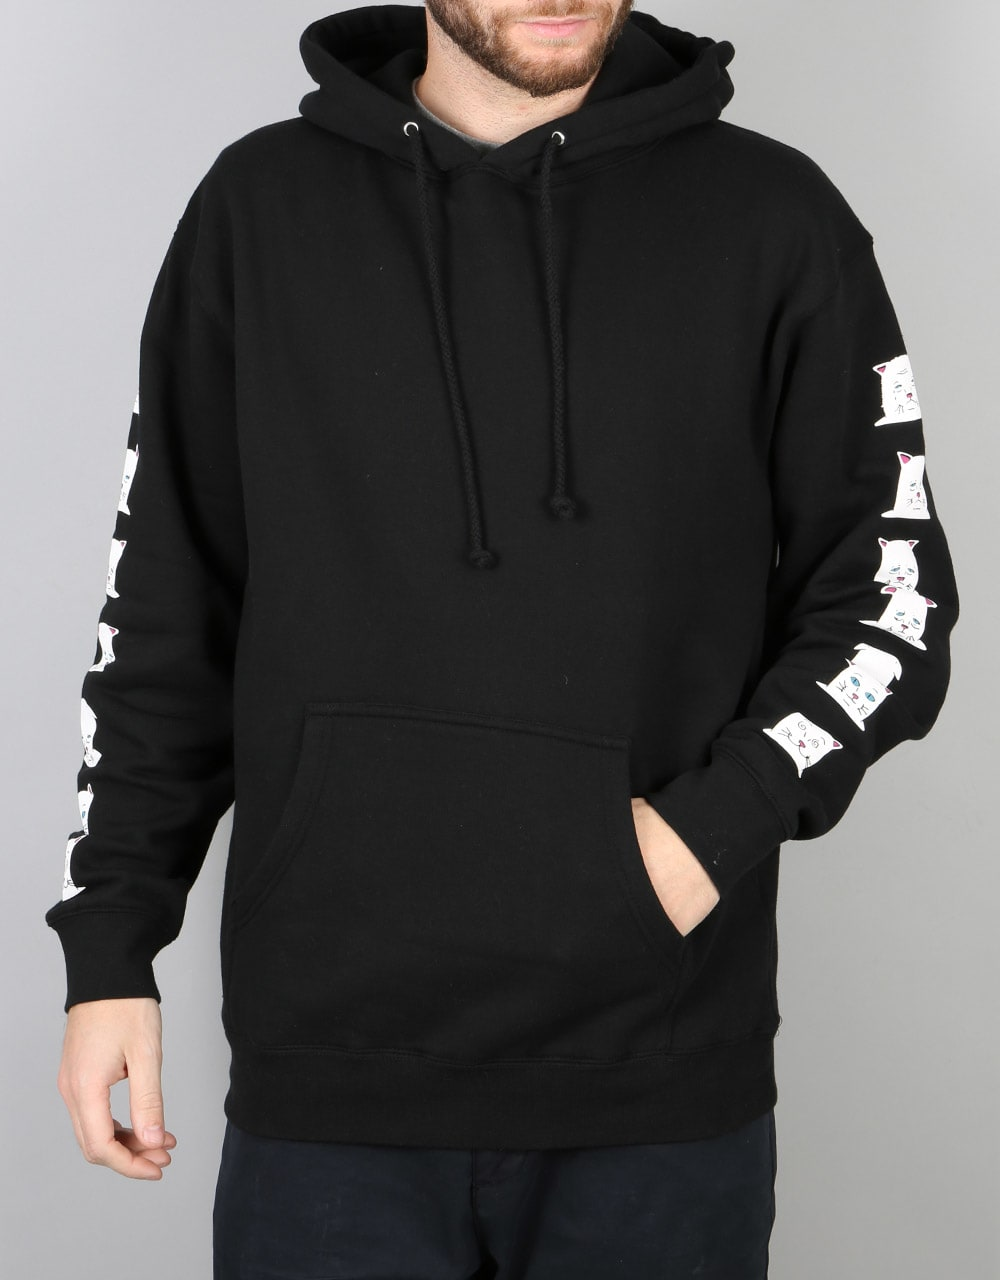 RIPNDIP Caturdays Pullover Hoodie - Black | Skate Pullover Hoodies | Mens Hoodies | Clothing ...